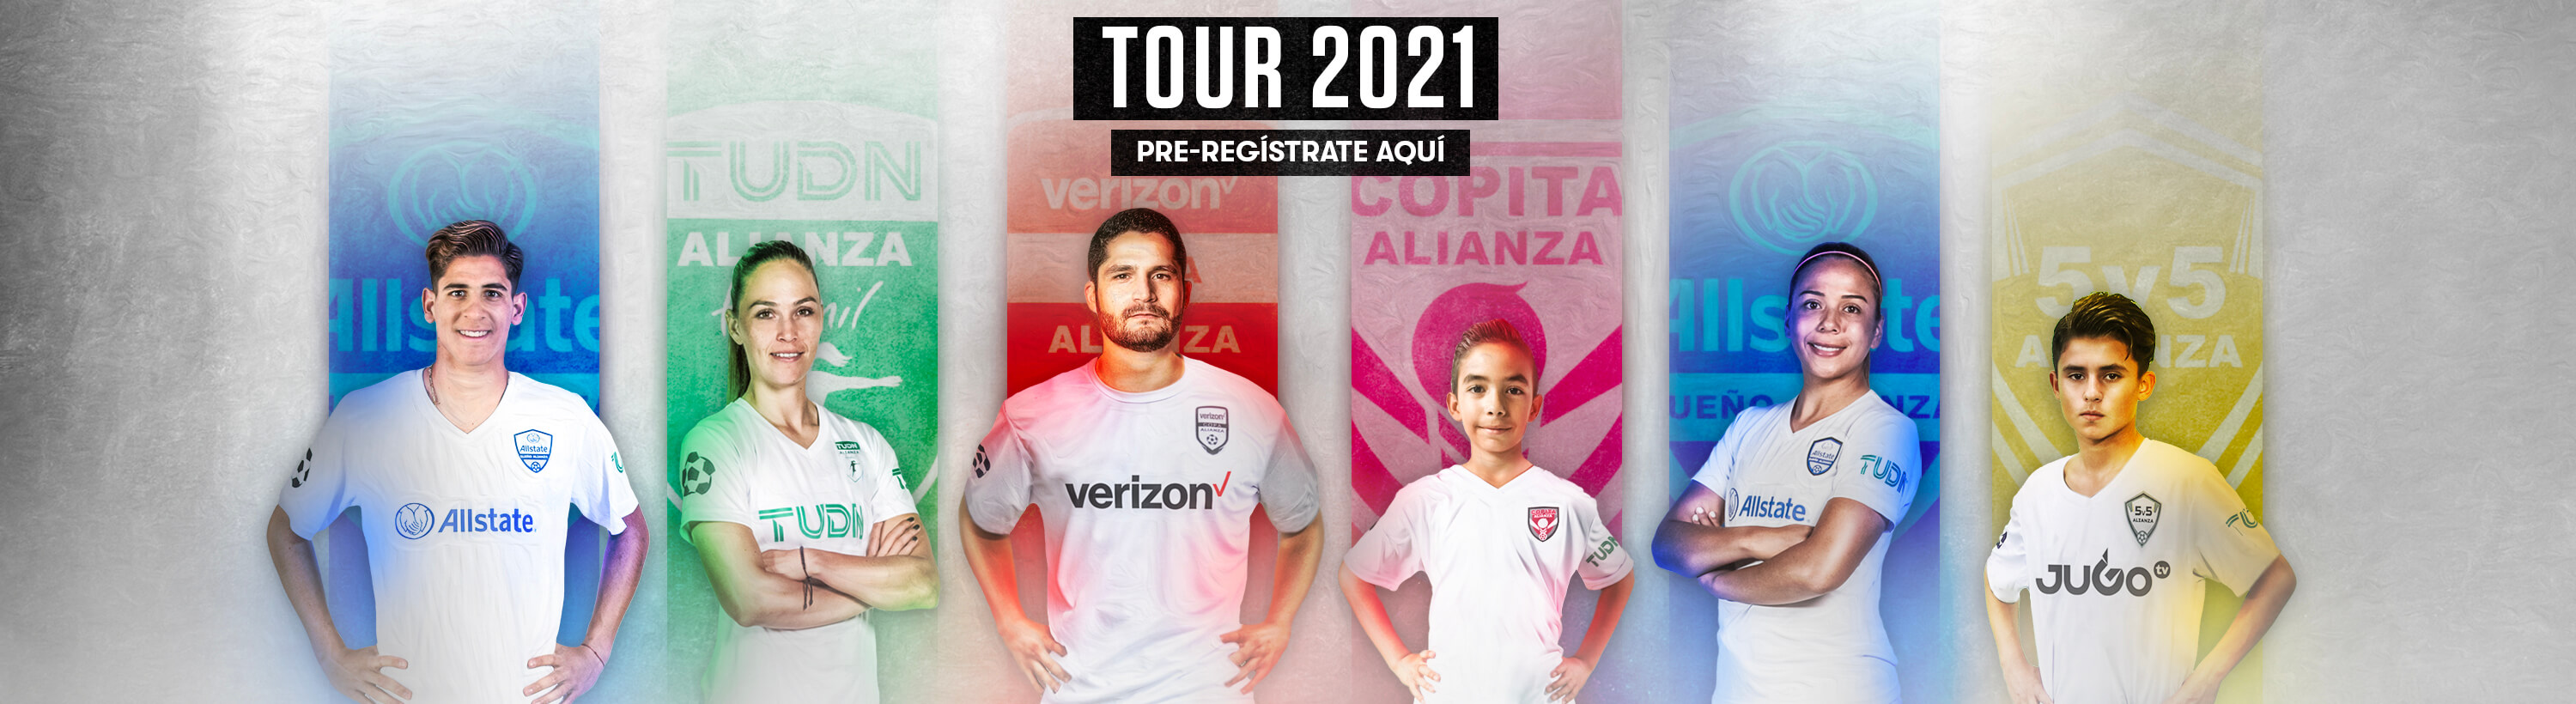 Alianza de Futbol Tryouts and tournaments pre-register 2021